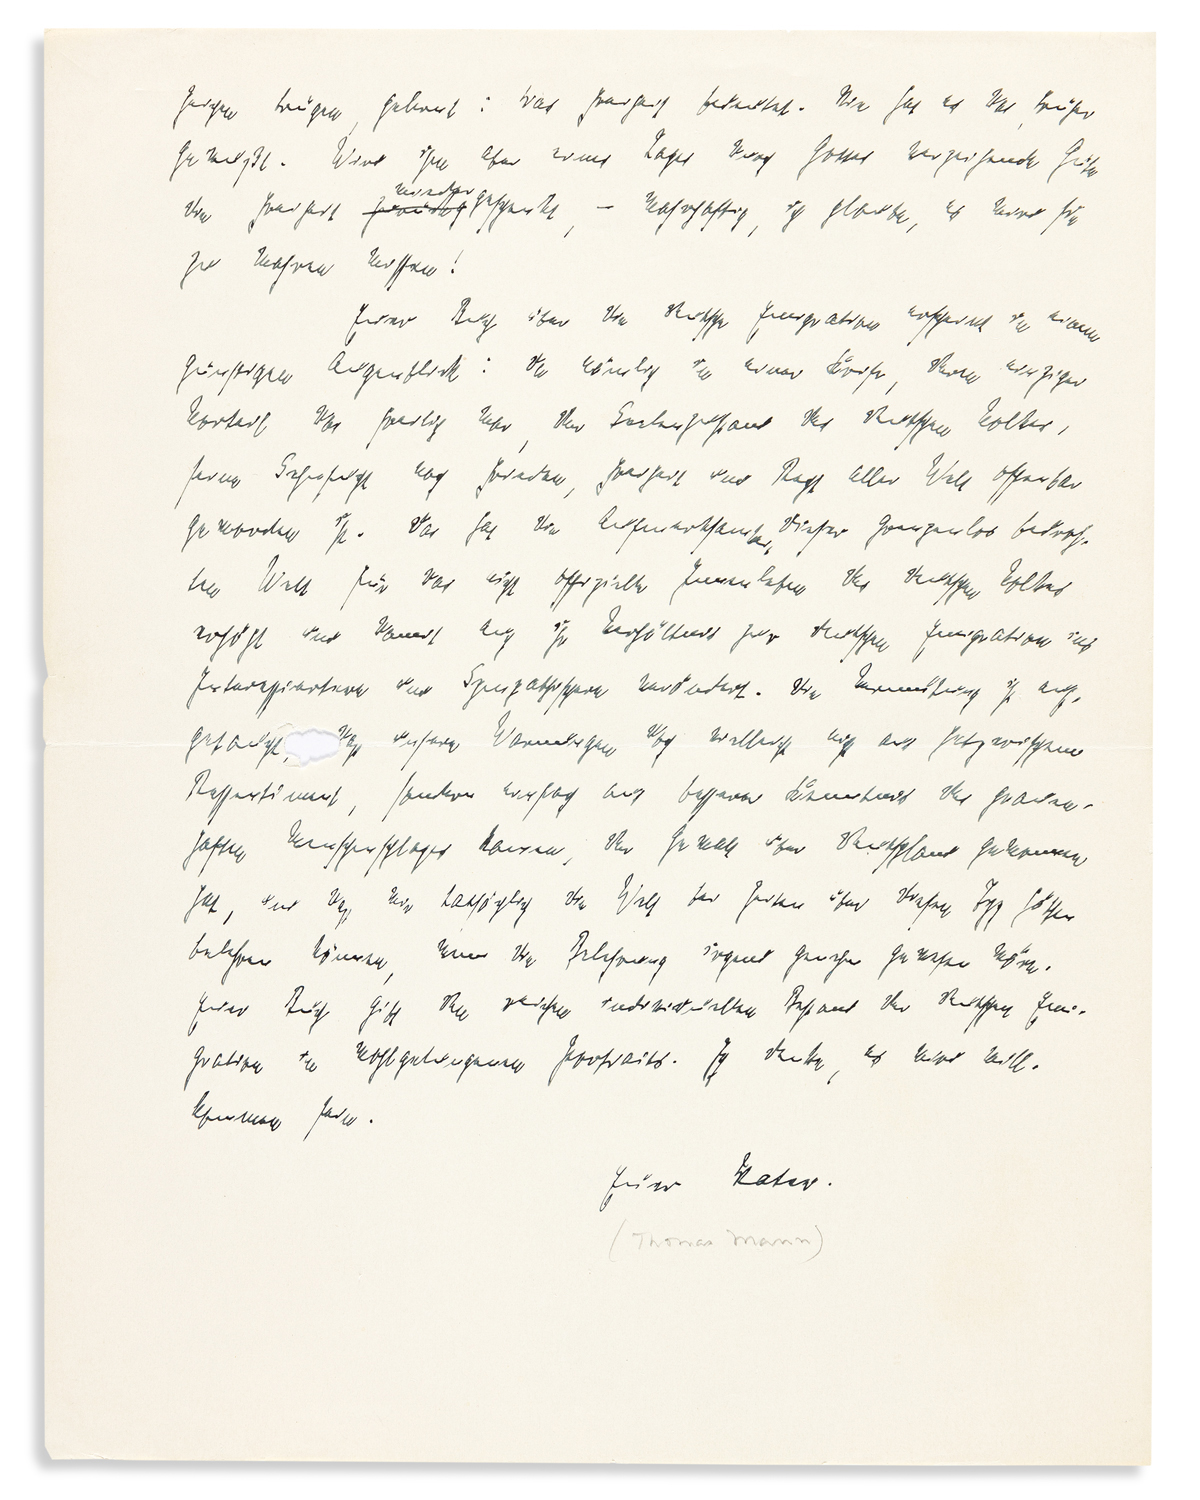 MANN, THOMAS. Autograph Letter Signed, Your Father, to Erika and Klaus Mann (Dear Children), in German,